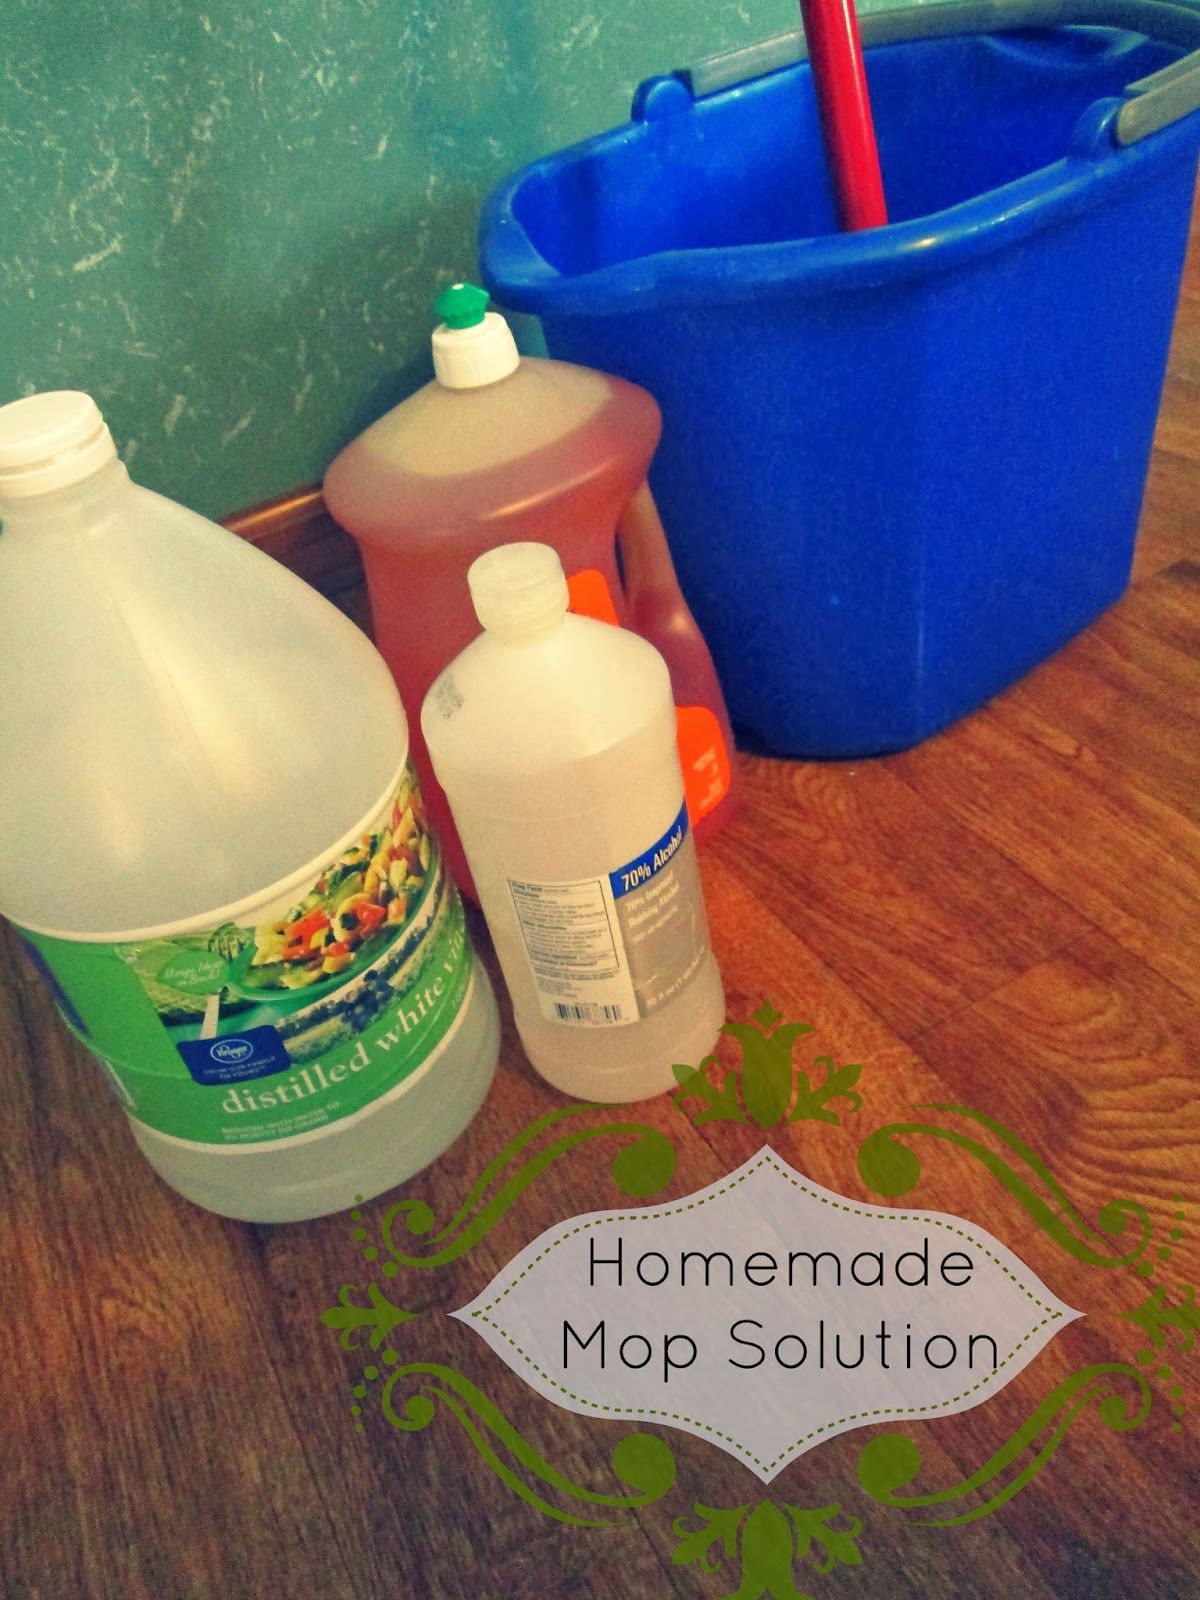 Homemade Mop Solution Mop solution, Homemade, Cleaning